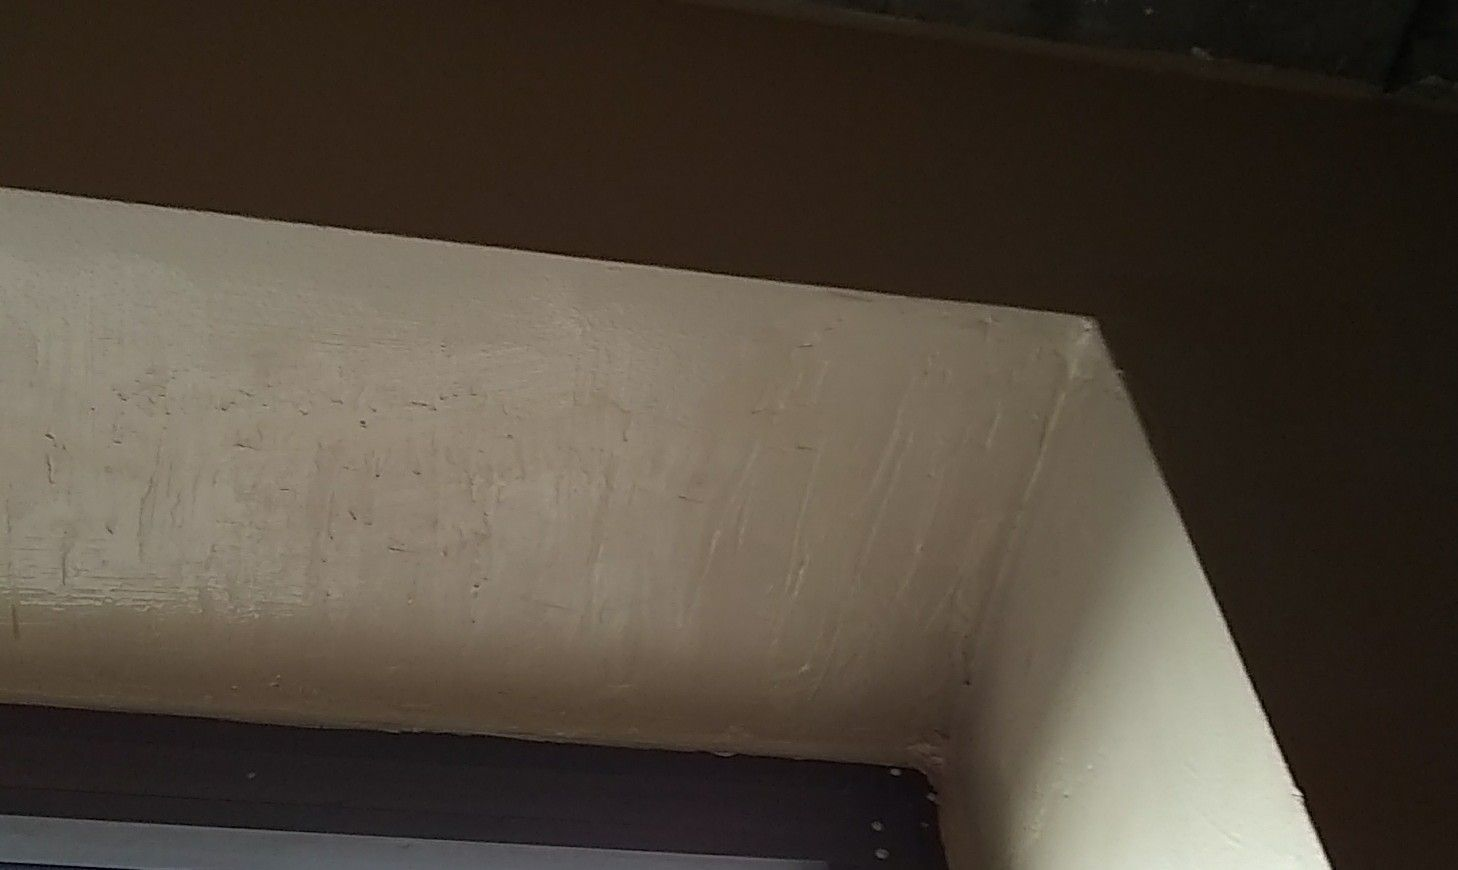 Finished with paint and drywall joint compound always